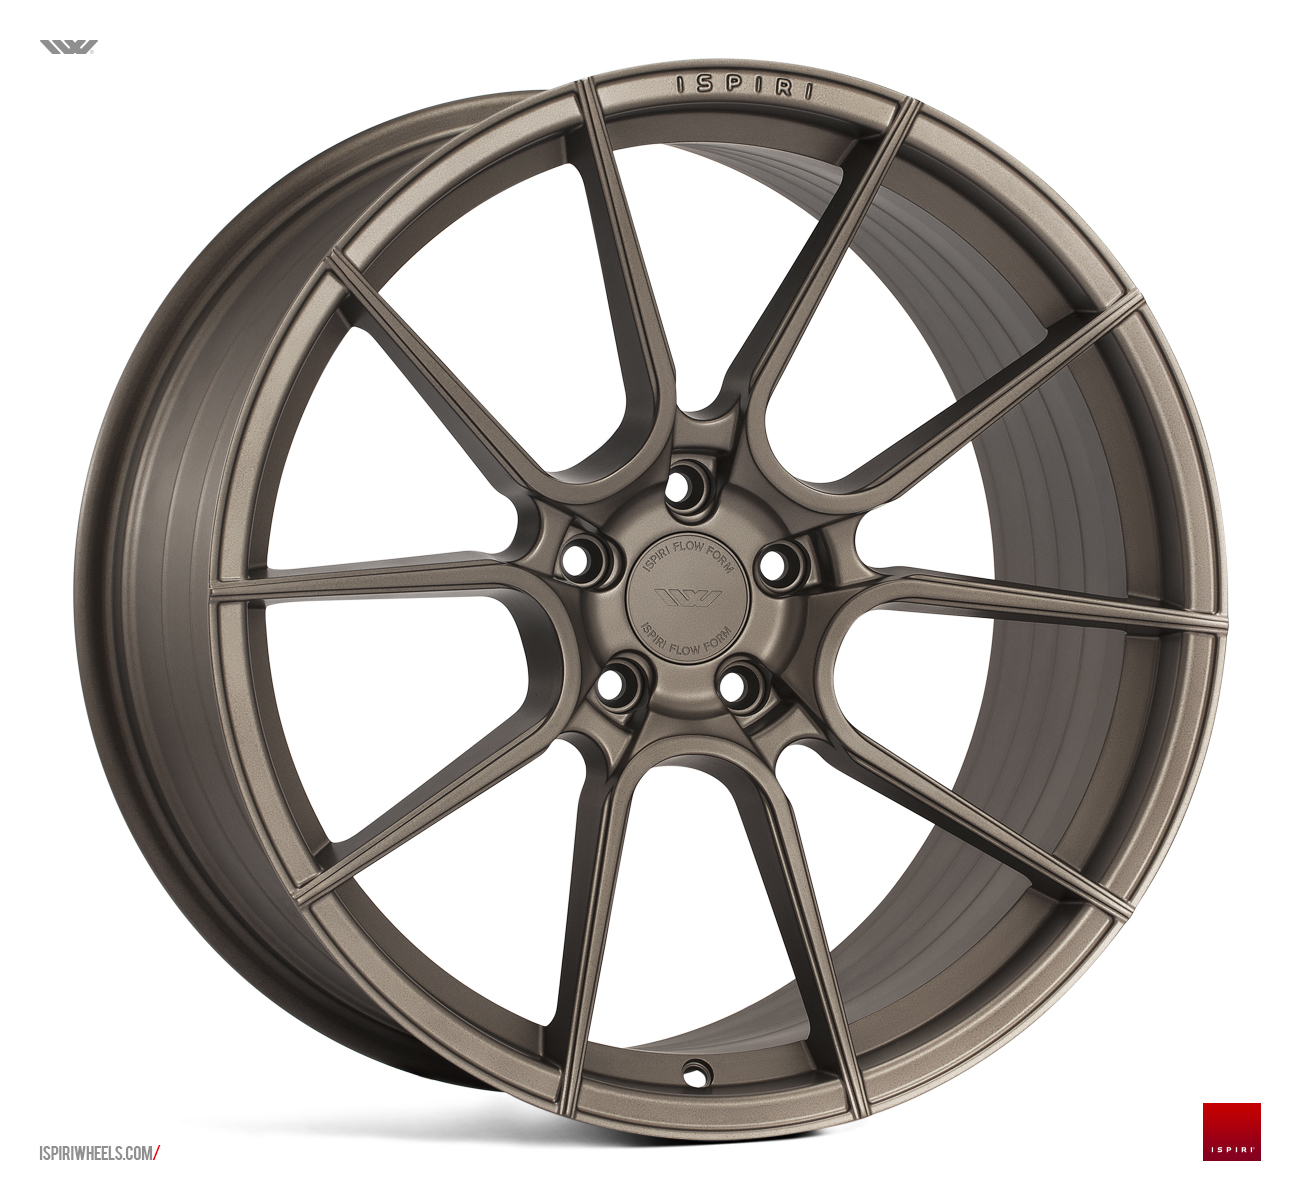 "NEW 20"" ISPIRI FFR6 TWIN 5 SPOKE ALLOY WHEELS IN MATT CARBON BRONZE, VARIOUS FITMENTS AVAILABLE"